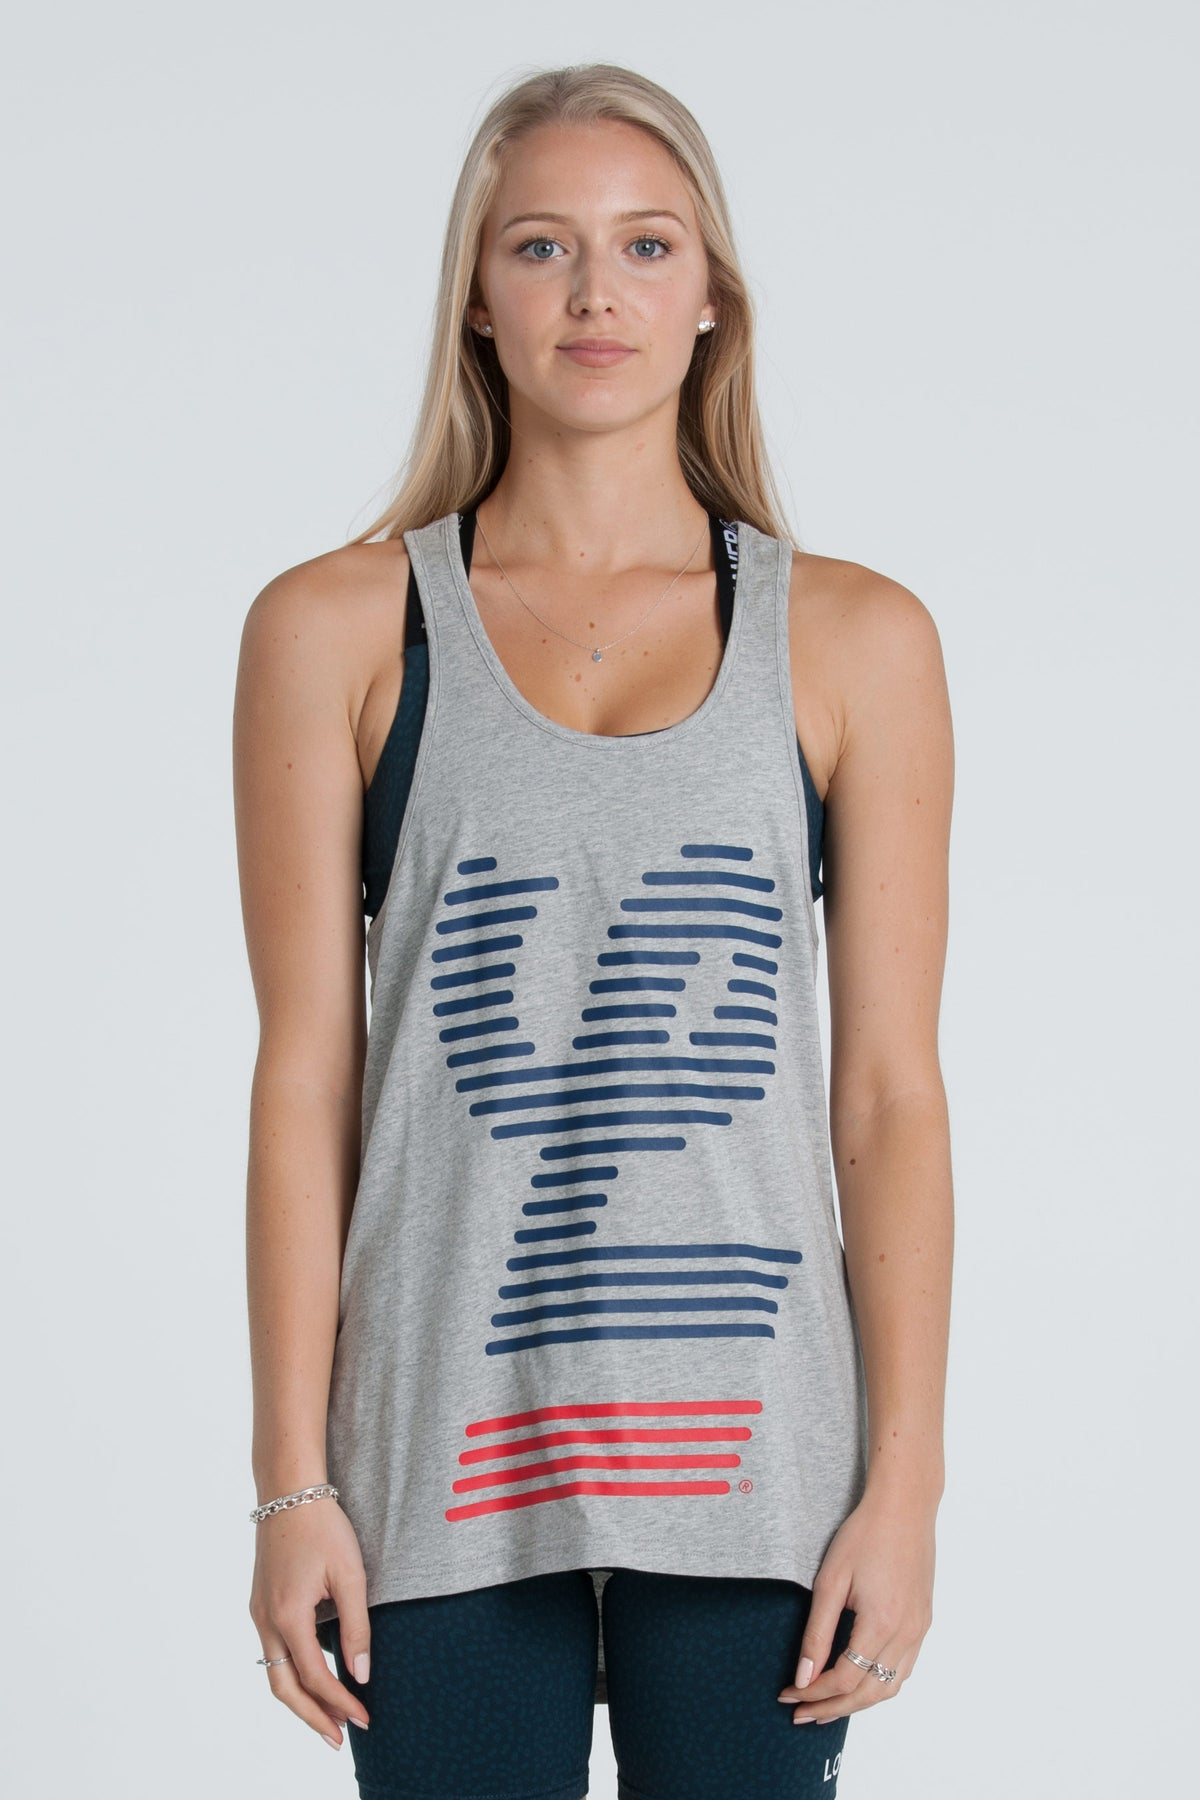 Blinds Climb Tank - Grey Marle